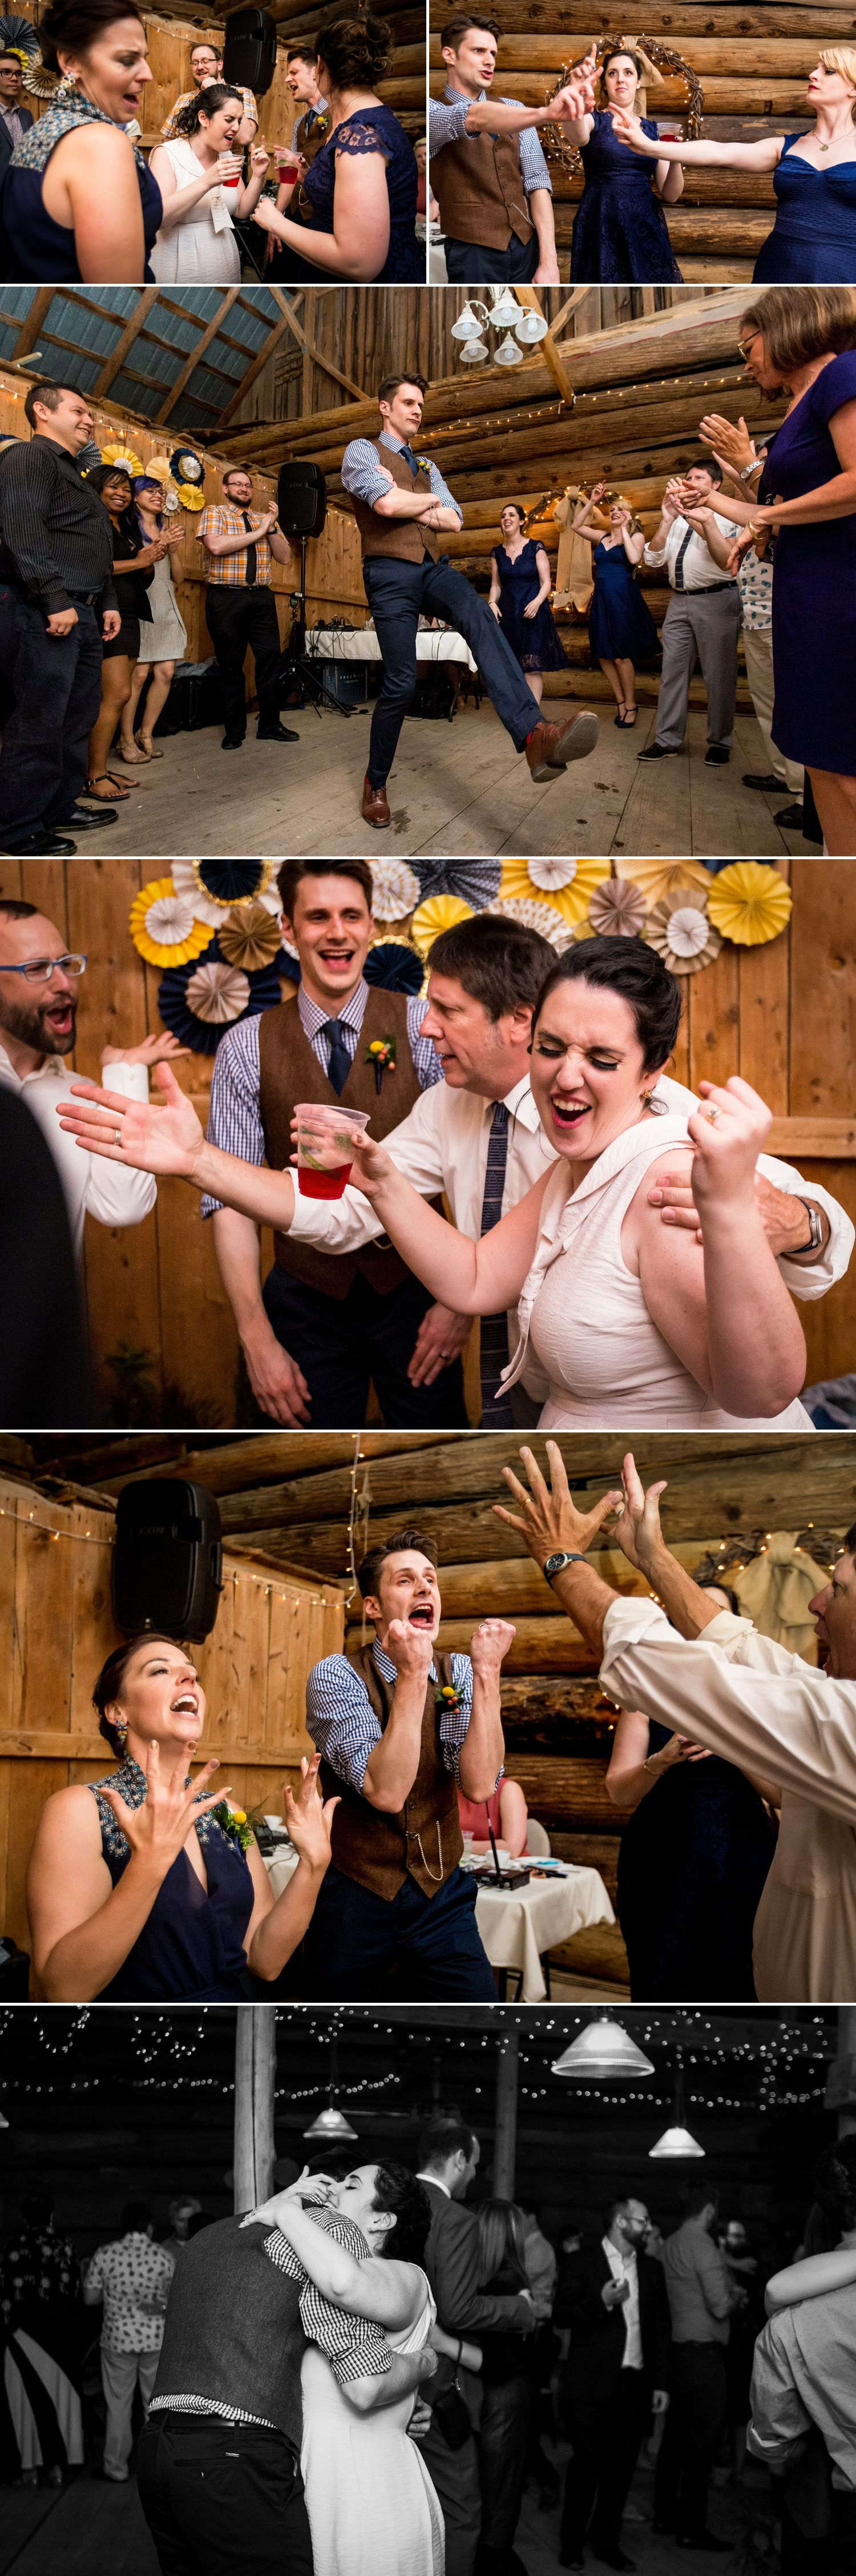 The bride and groom and their guests dancing during their wedding reception at The Herb Garden in Almonte